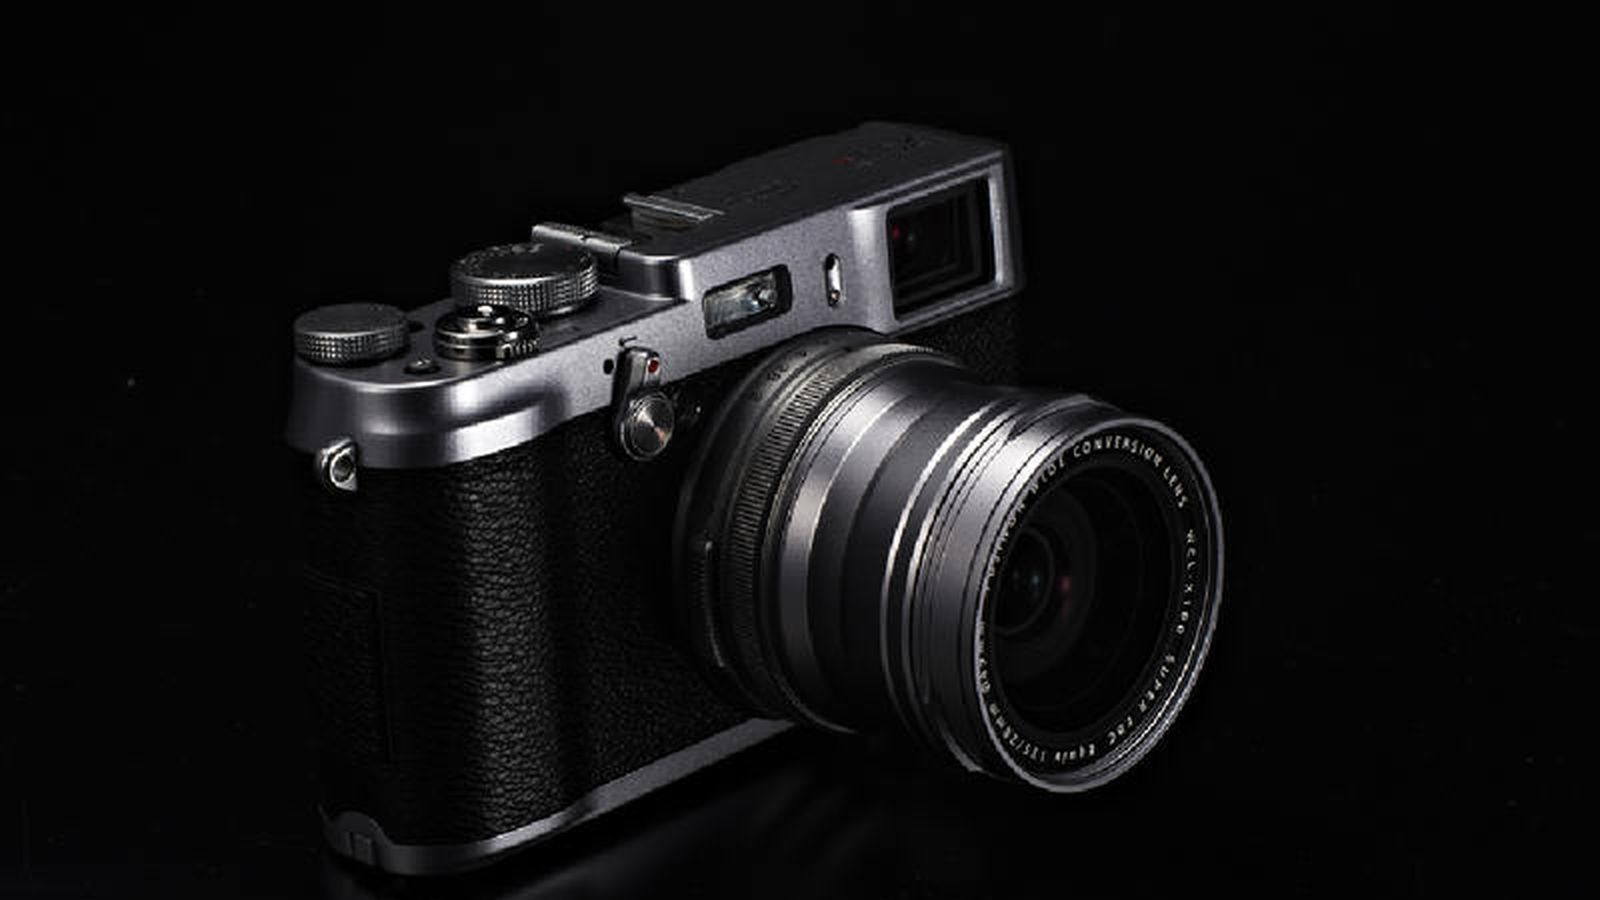 Fujifilm Updates Its High End Camera Line With The X100s